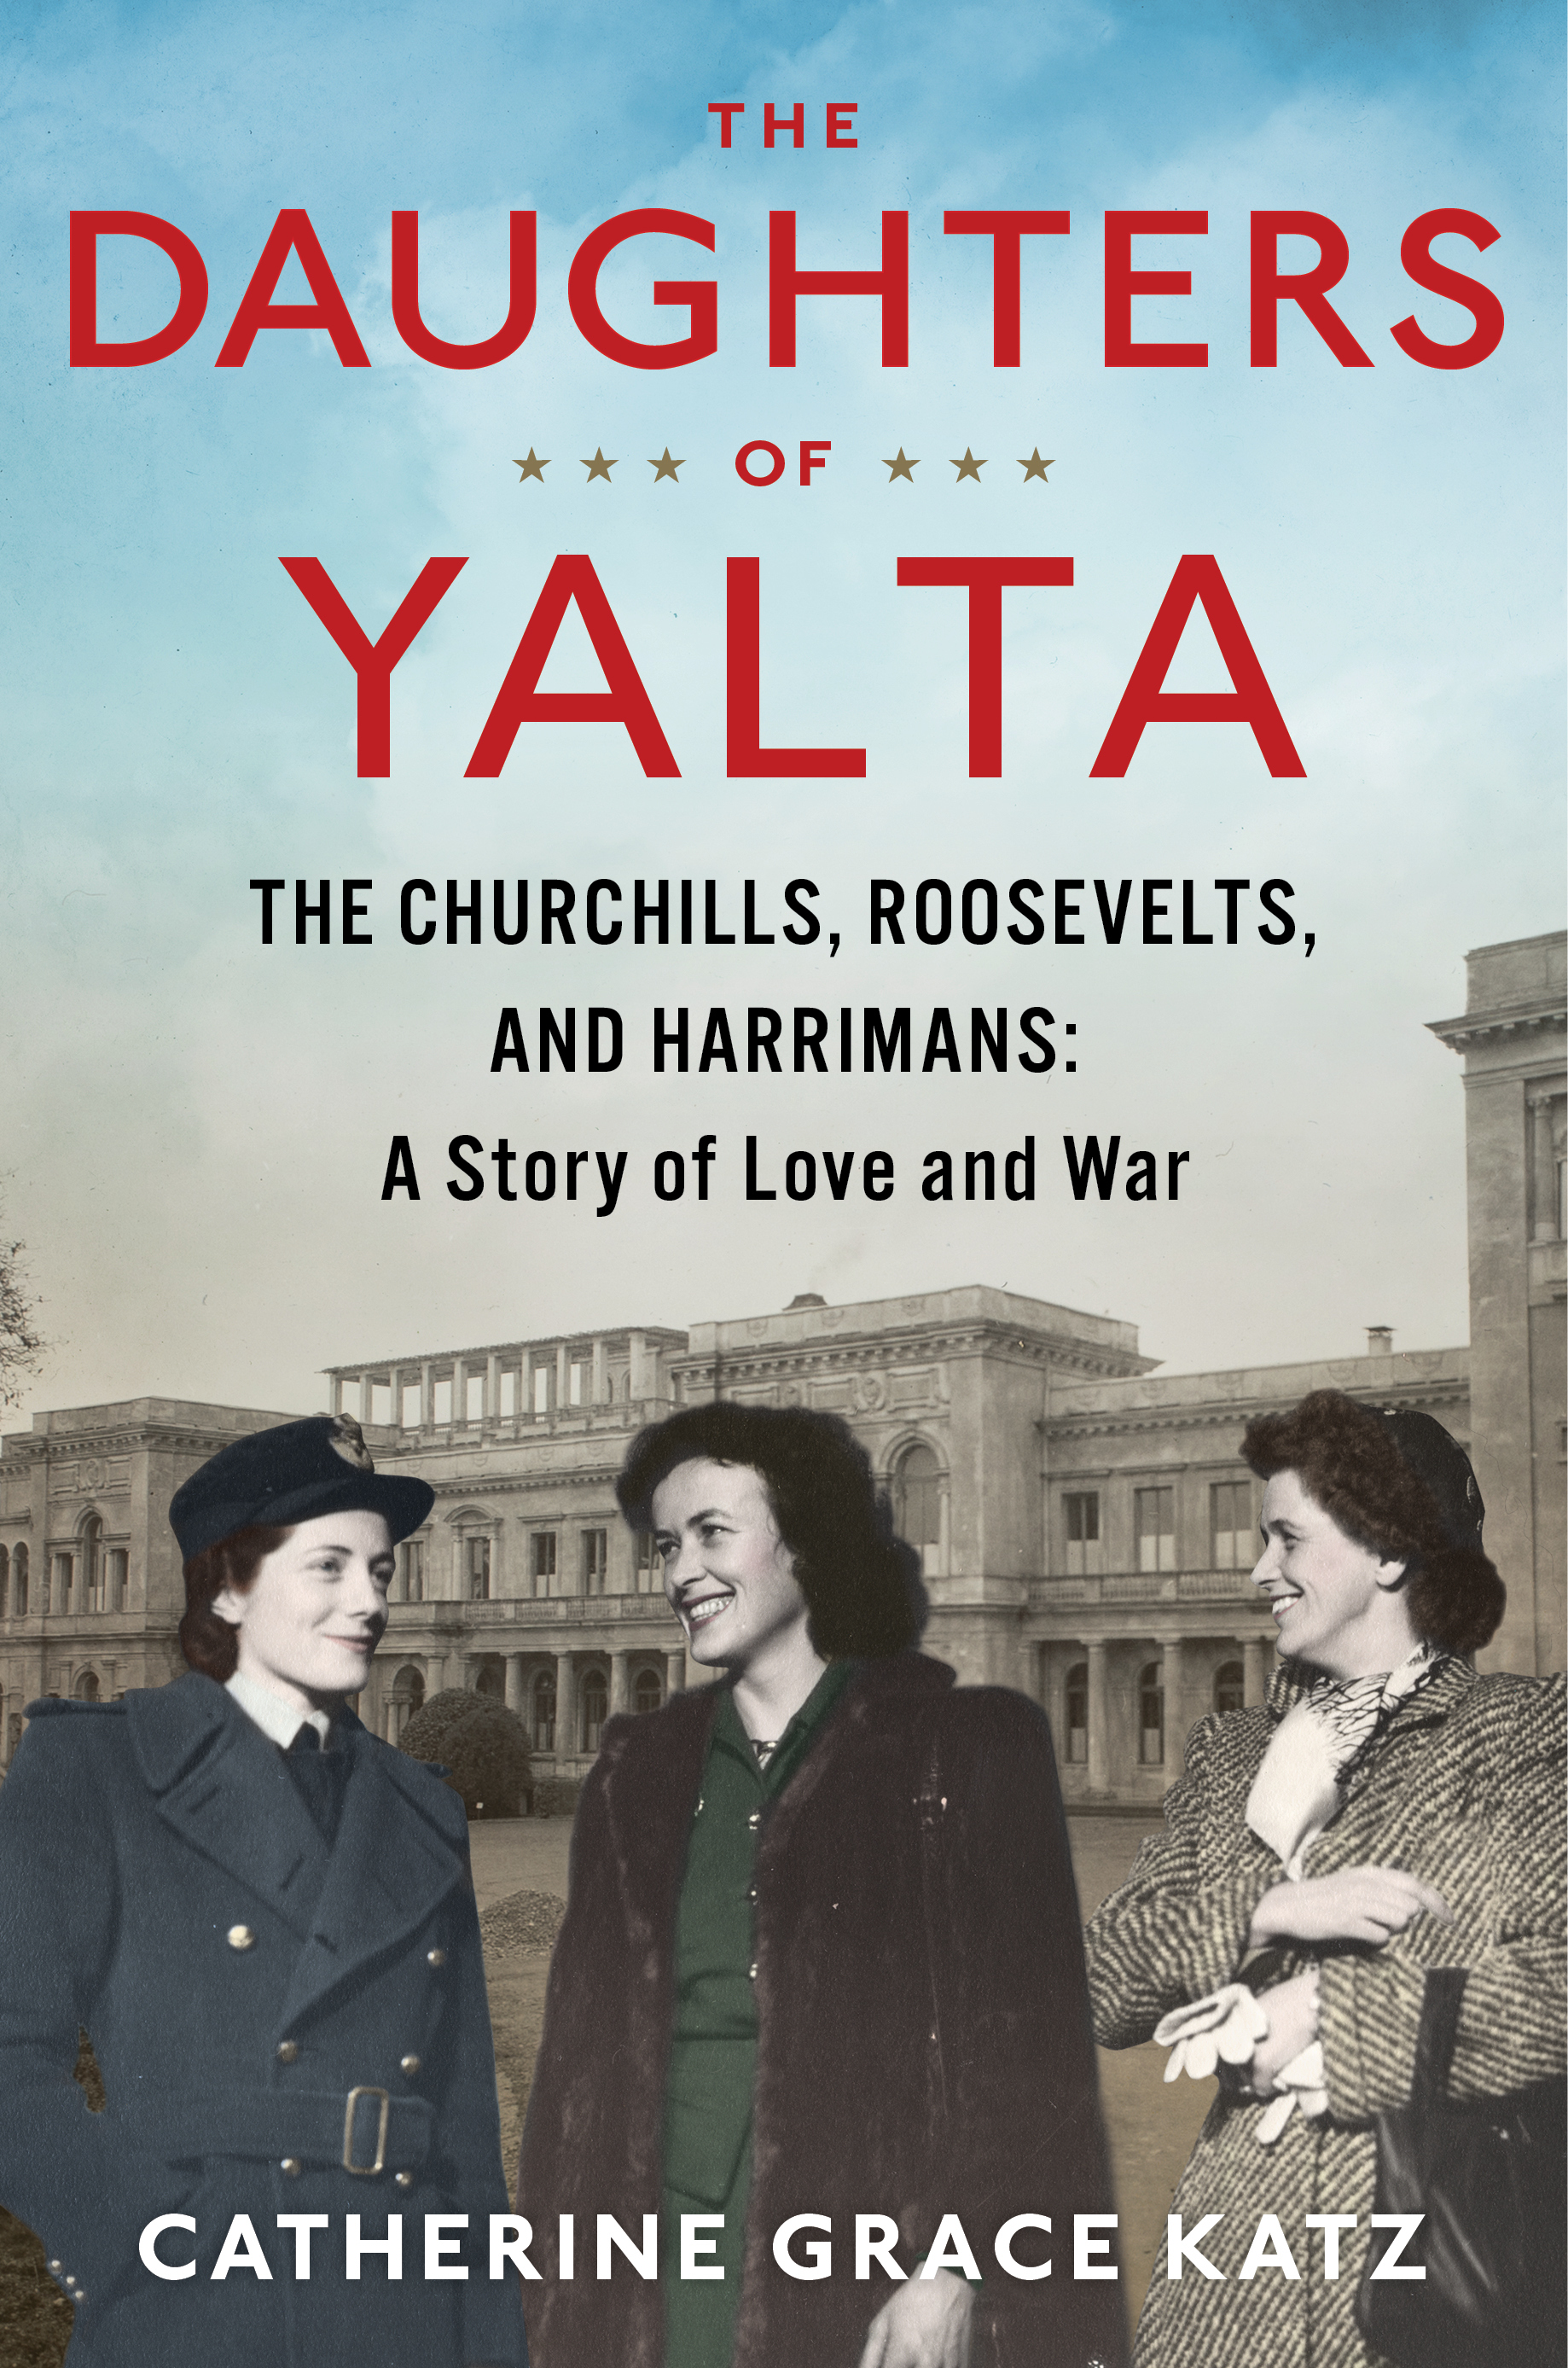 [PDF] [EPUB] The Daughters of Yalta: The Churchills, Roosevelts, and Harrimans:  A Story of Love and War Download by Catherine Grace Katz